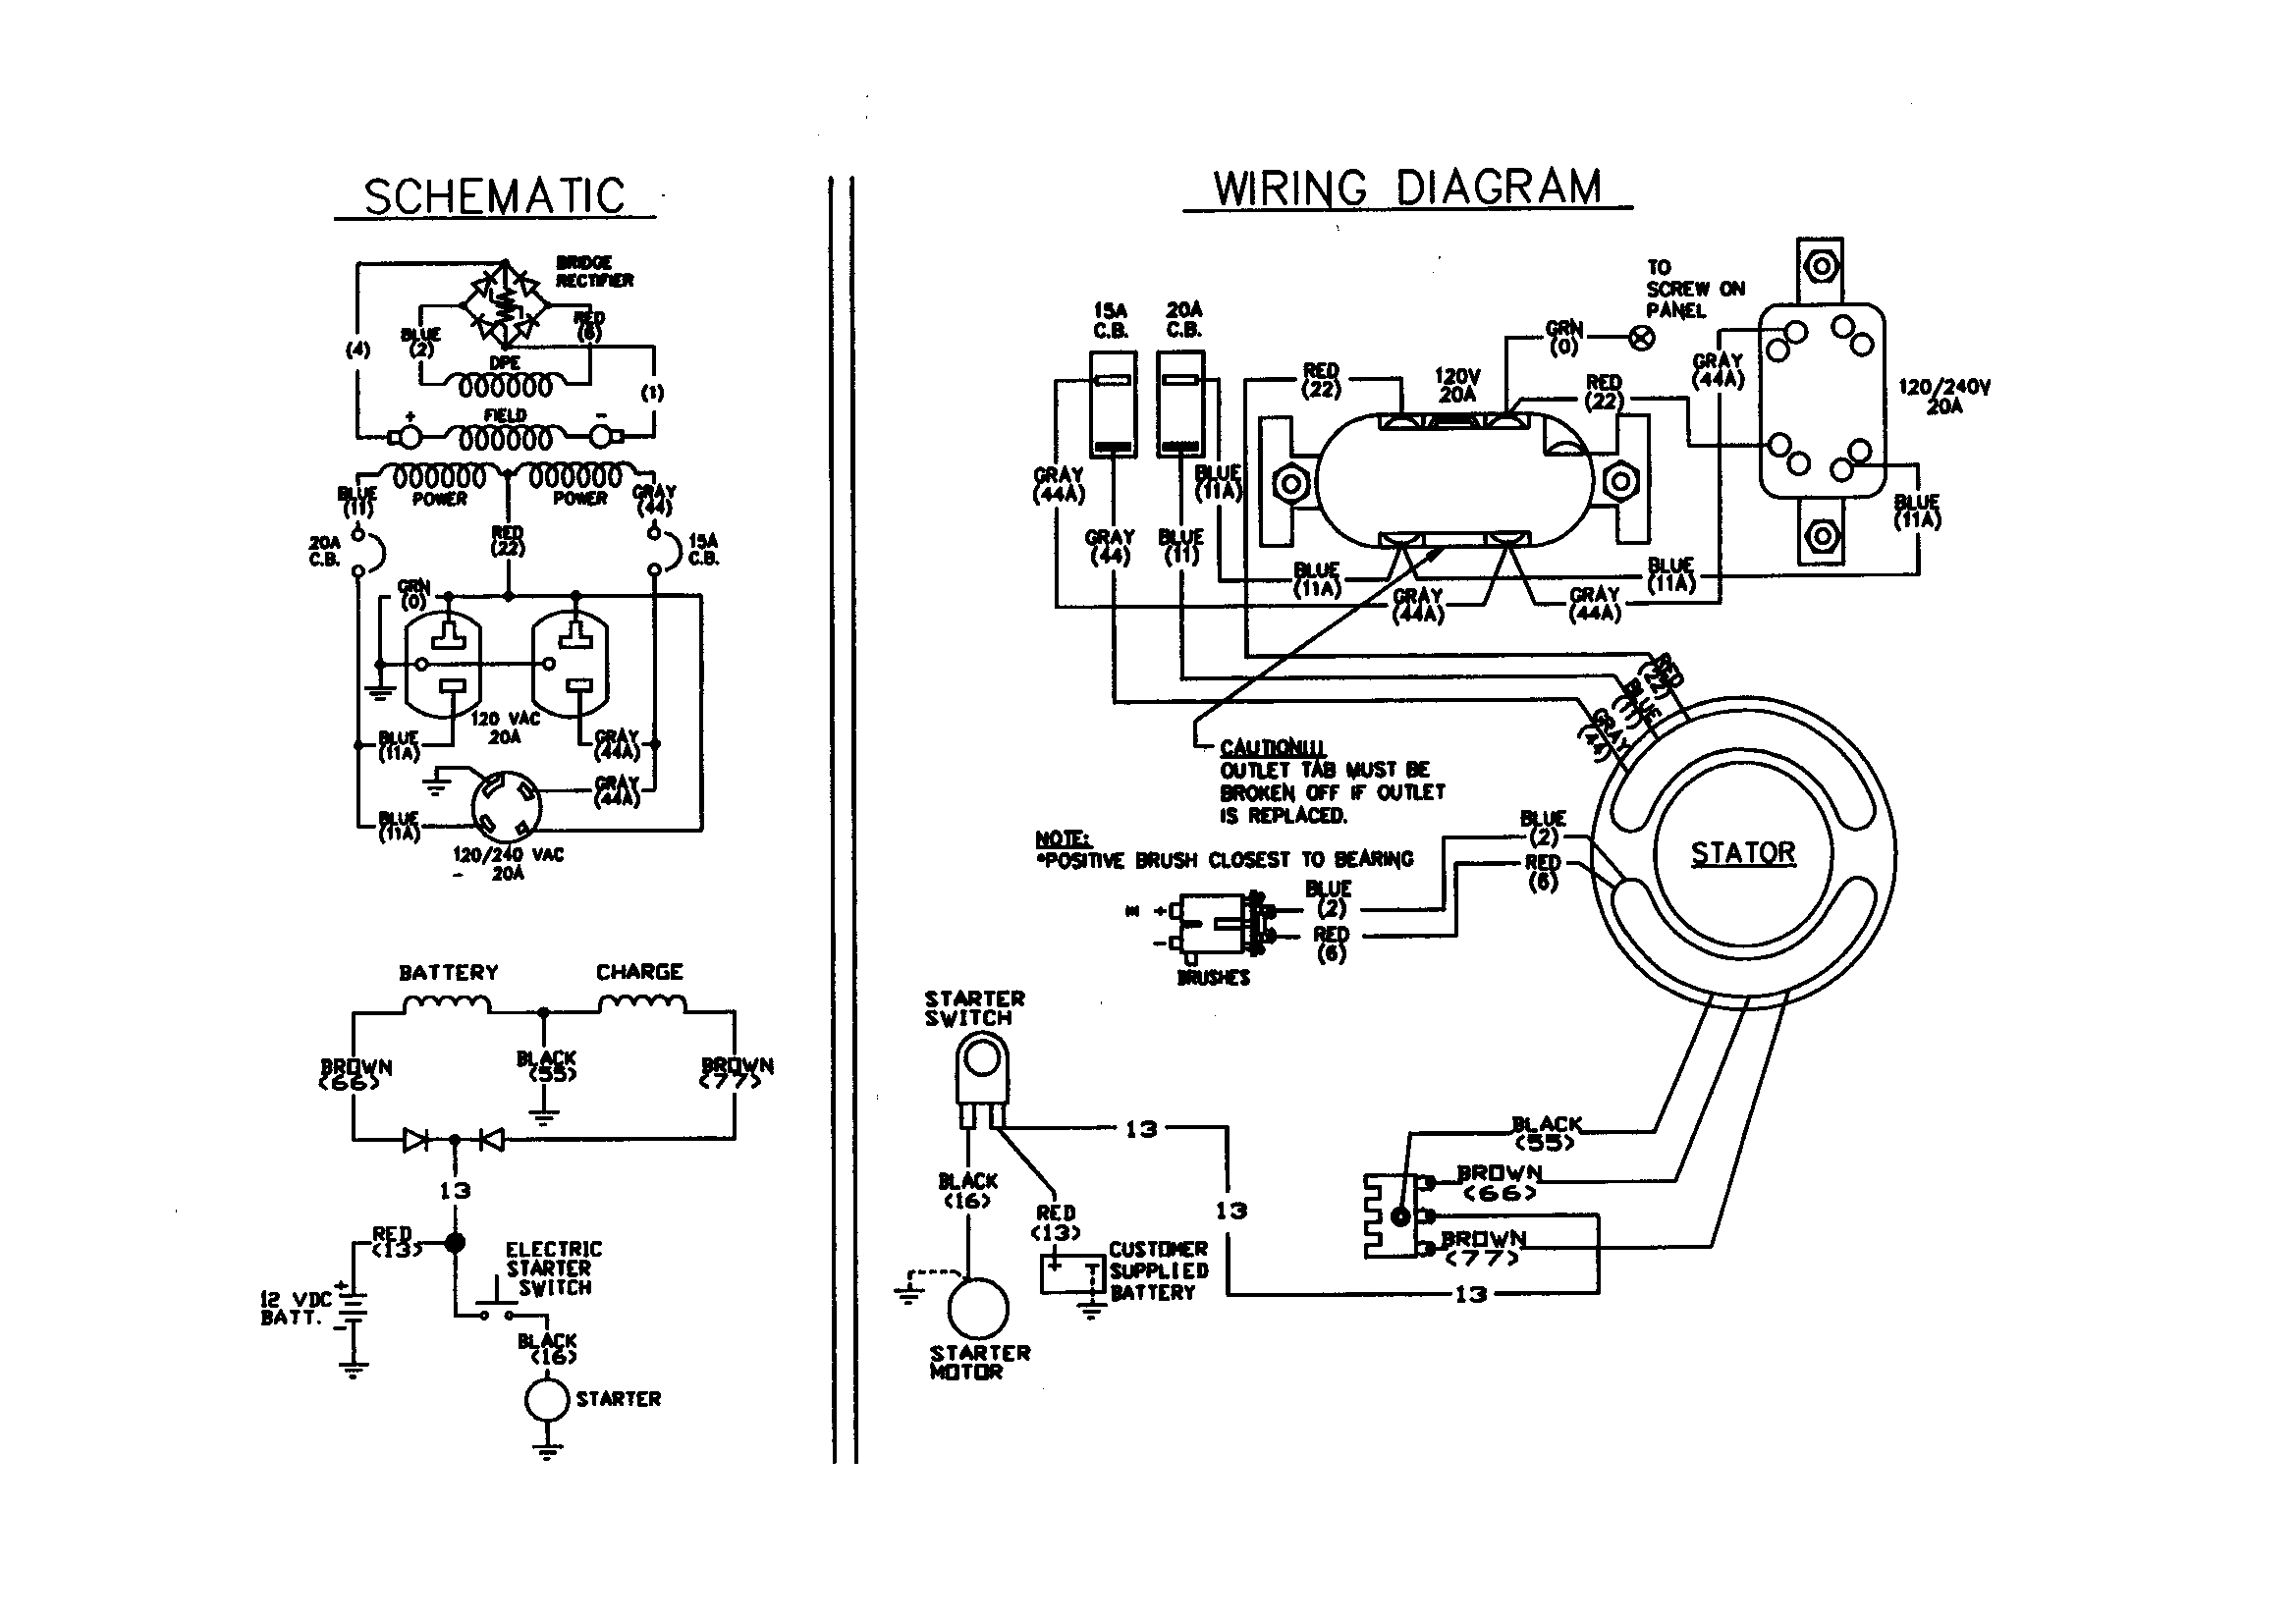 medium resolution of wiring diagram generator set diagram diagramtemplate wiring diagram generator transfer switch wiring diagram generator set